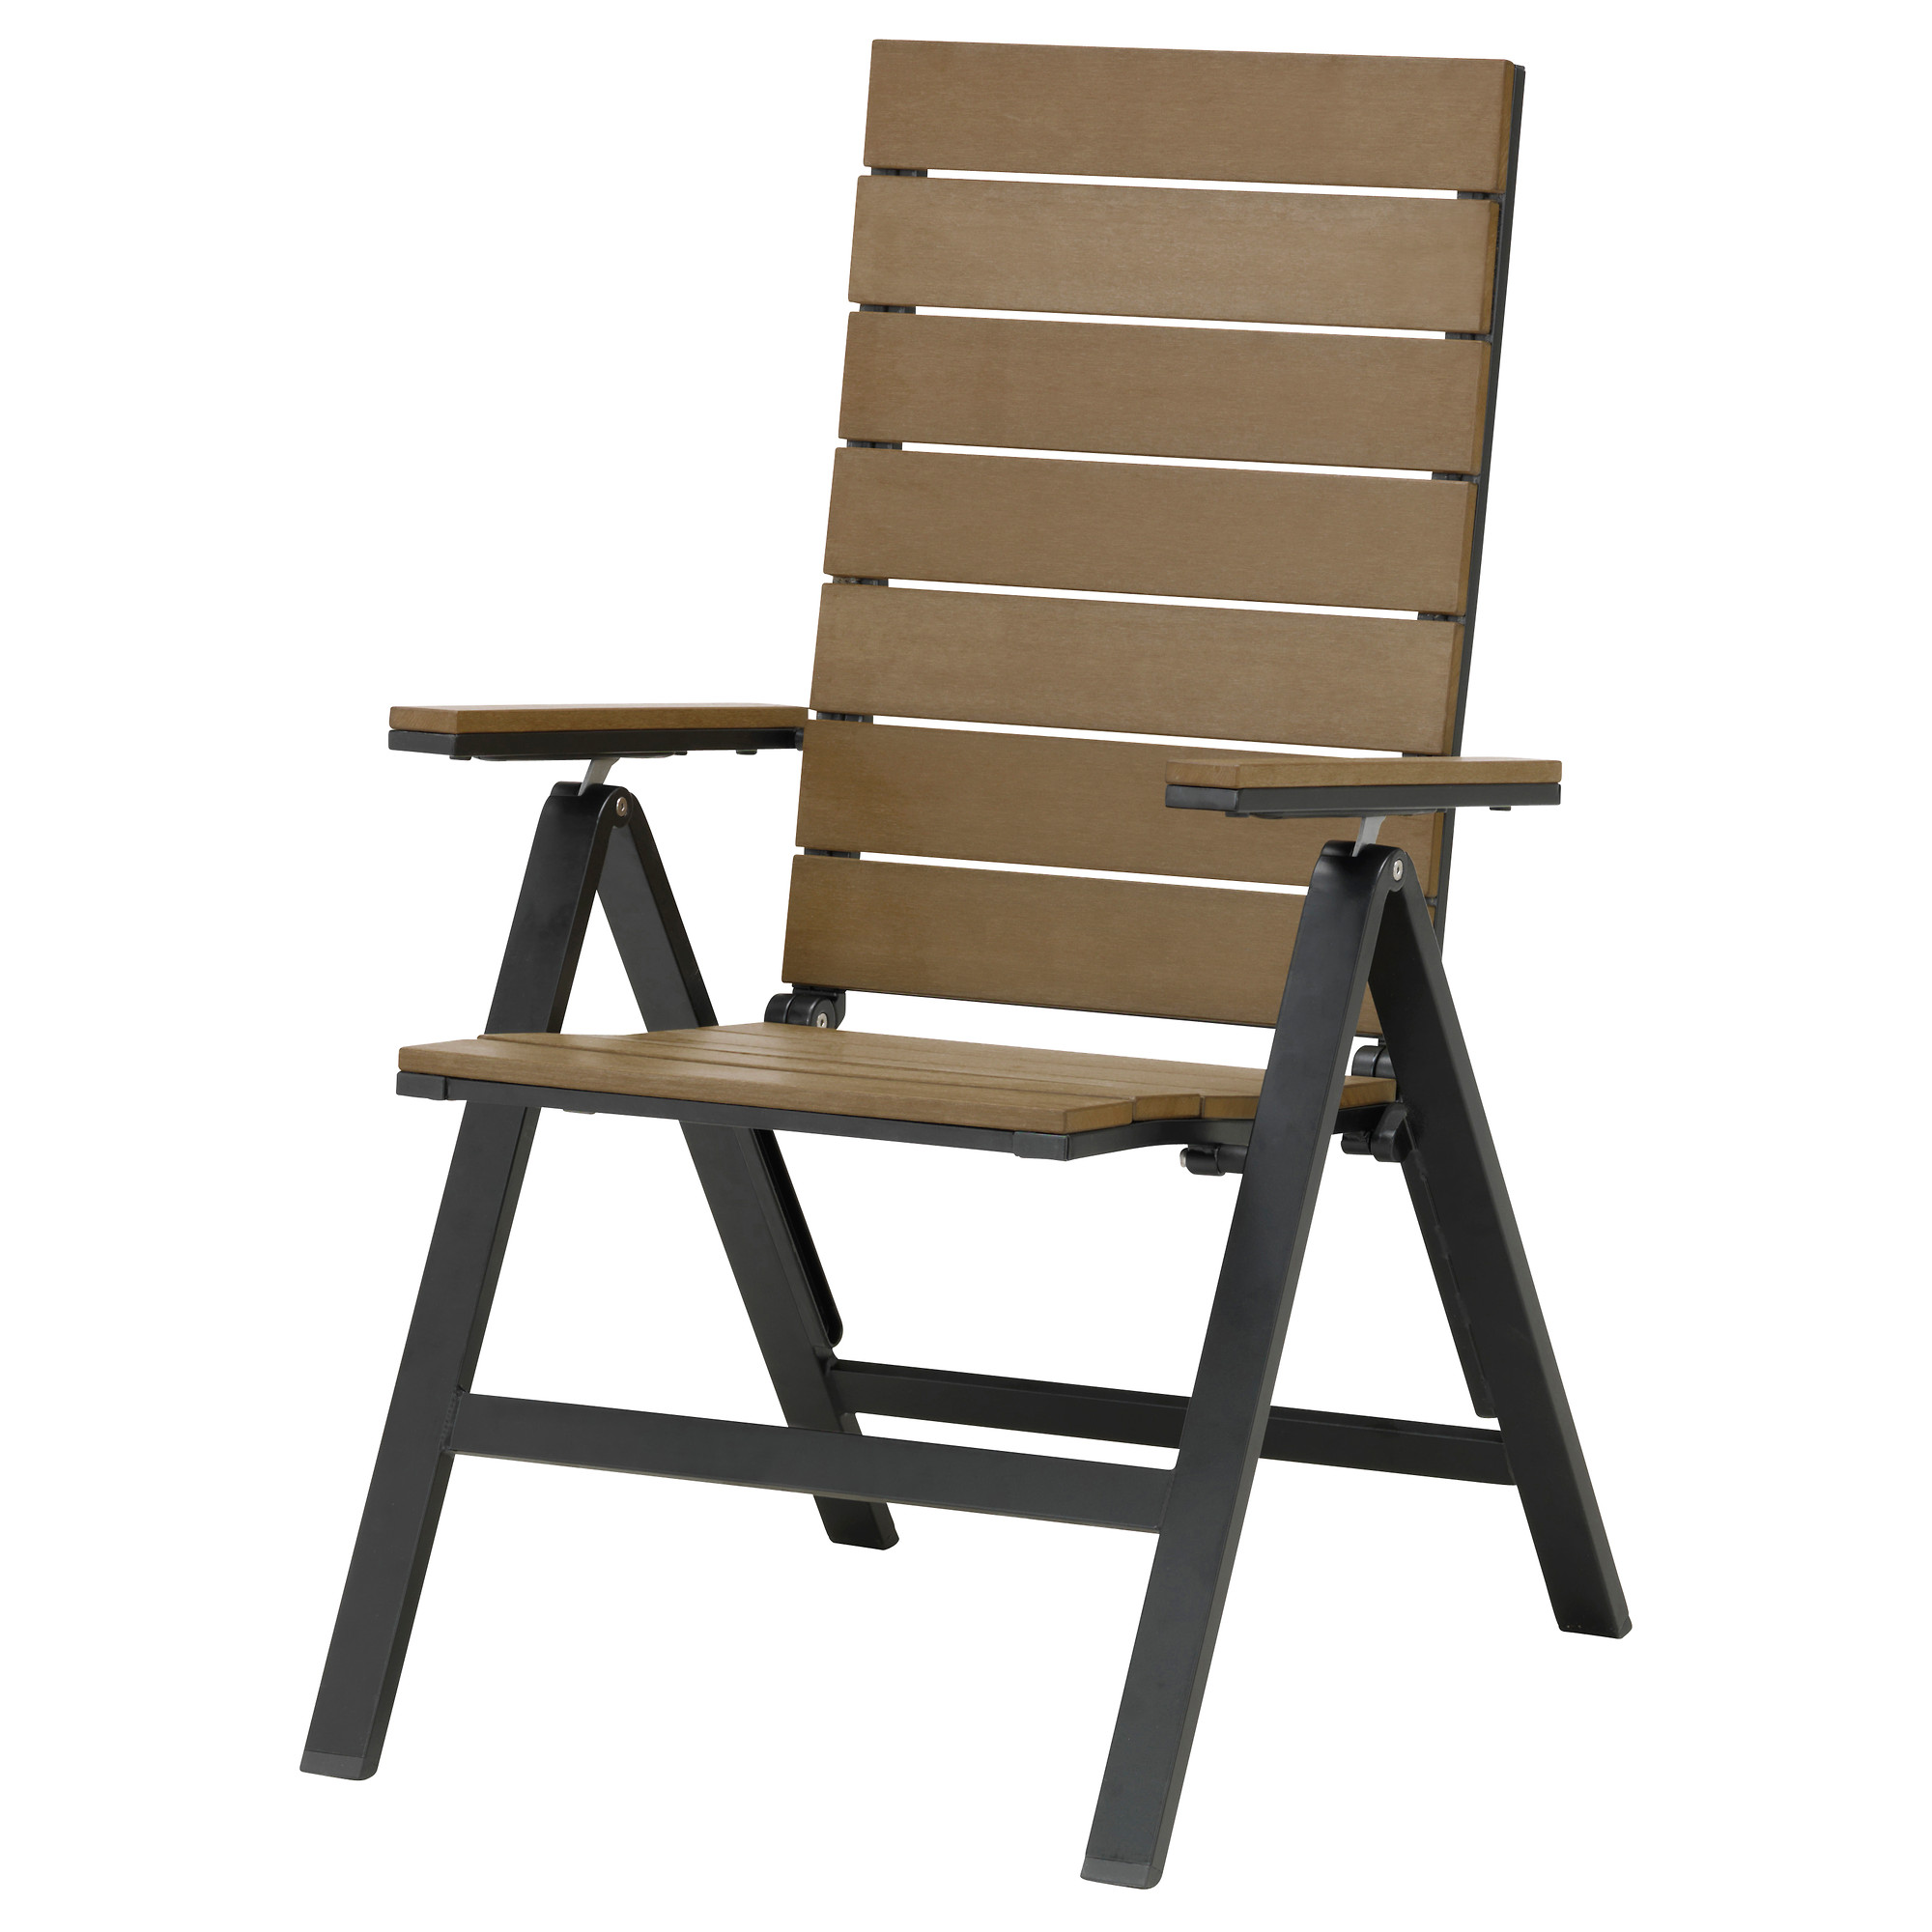 Outdoor foldable chairs - Falster Reclining Chair Outdoor Foldable Black Black Brown Width 23 5